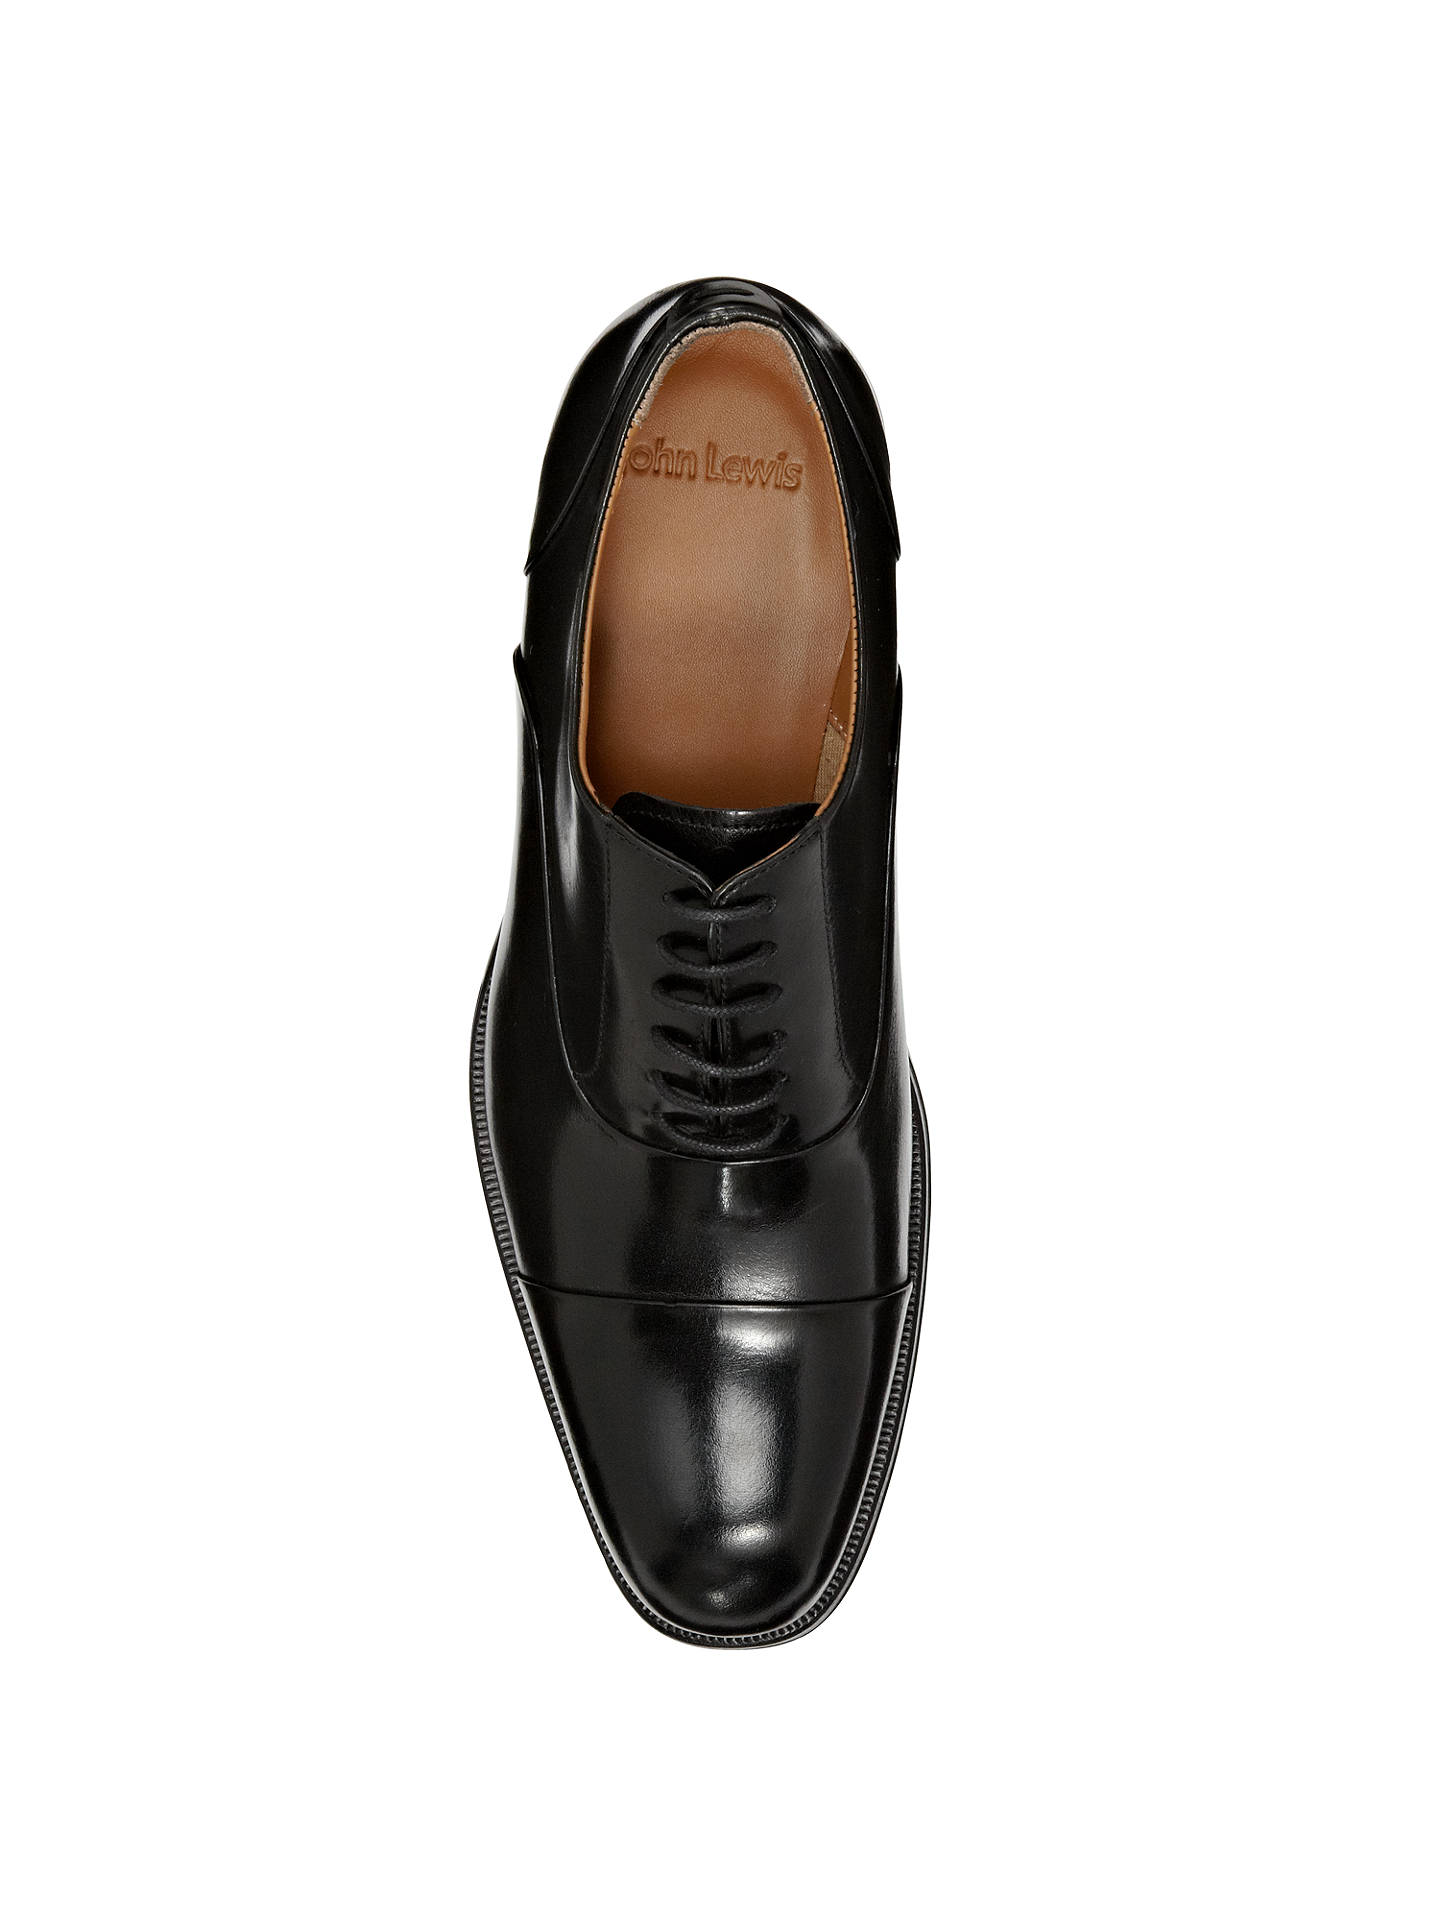 098ab2f6259b4 ... Buy John Lewis Goodwin Leather Oxford Shoes, Black, 7 Online at  johnlewis.com ...